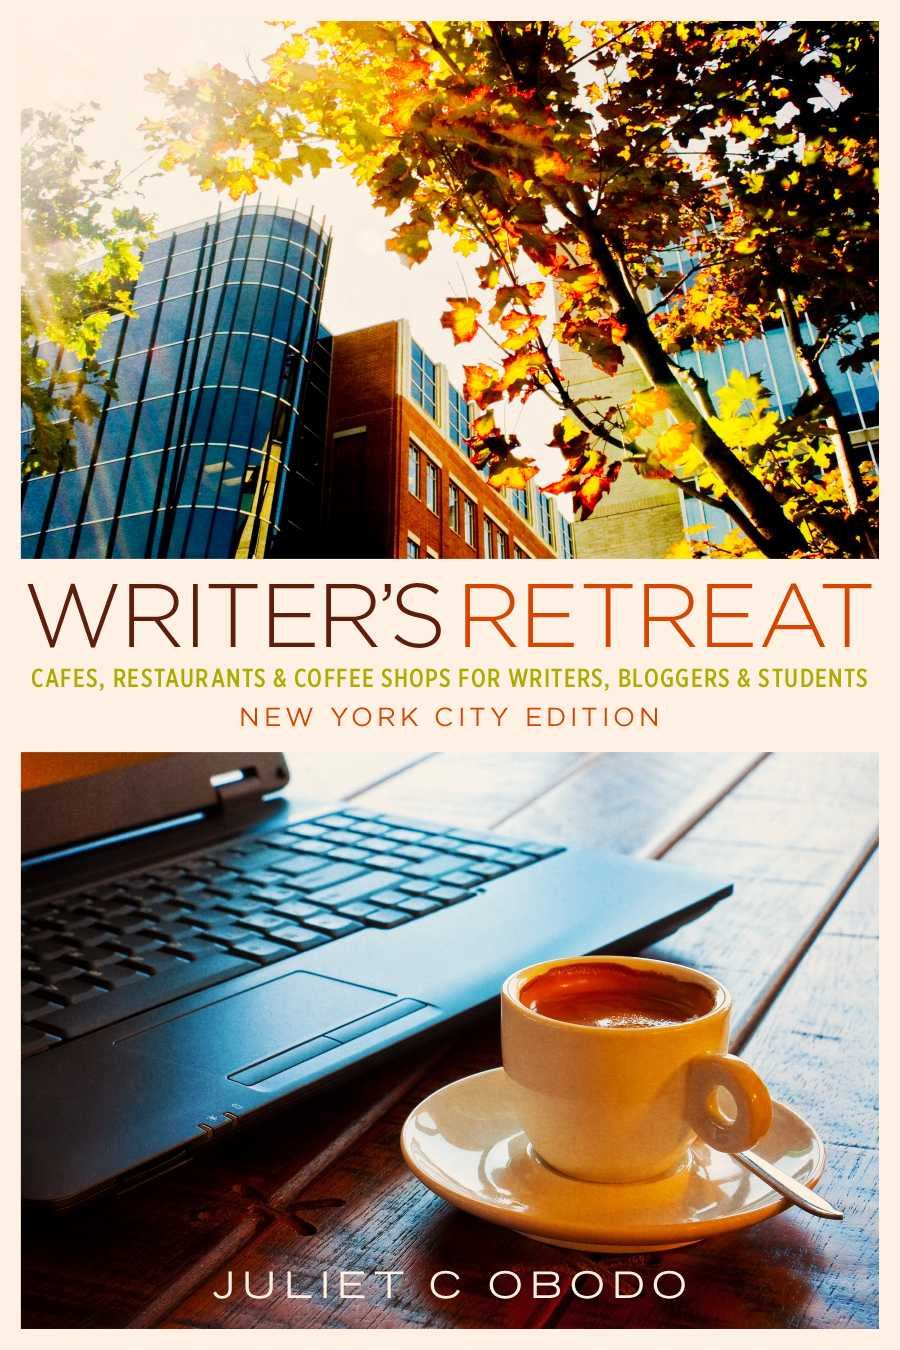 Writer's Retreat New York-Best Cafes for Writers,Bloggers & Students